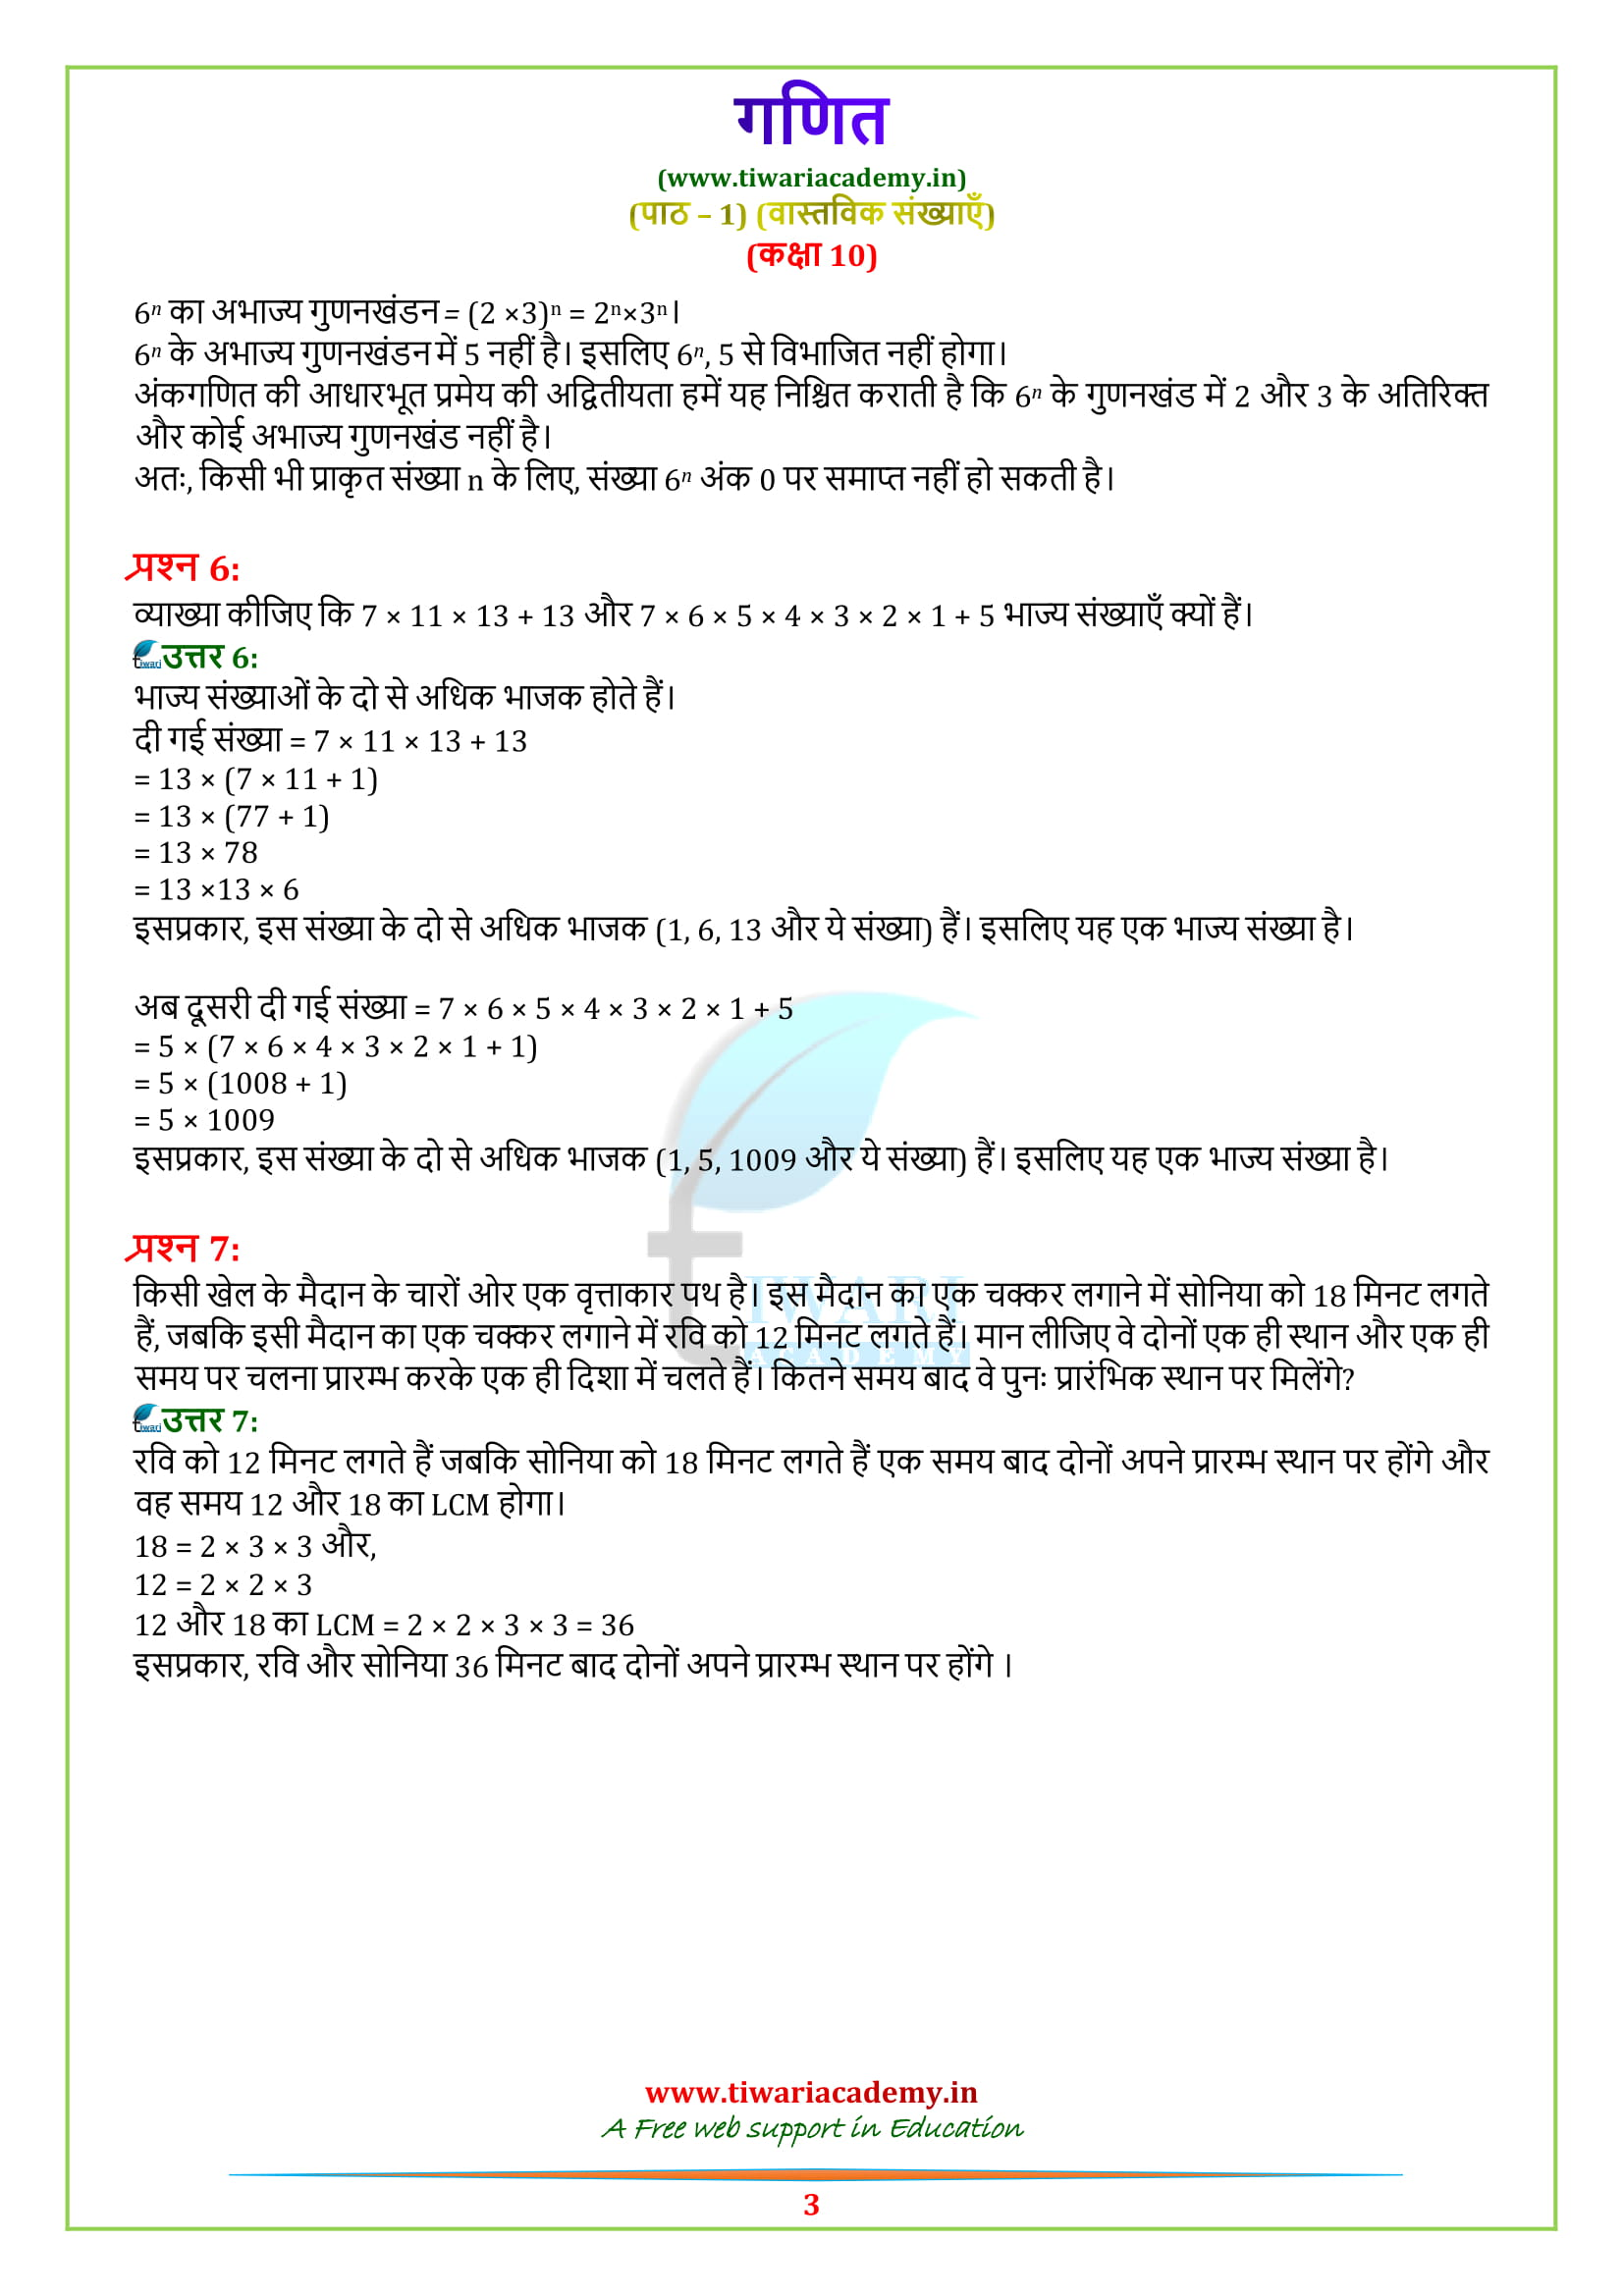 Class 10 Maths Chapter 1 Exercise 1.2 in Hindi question 4, 5, 6